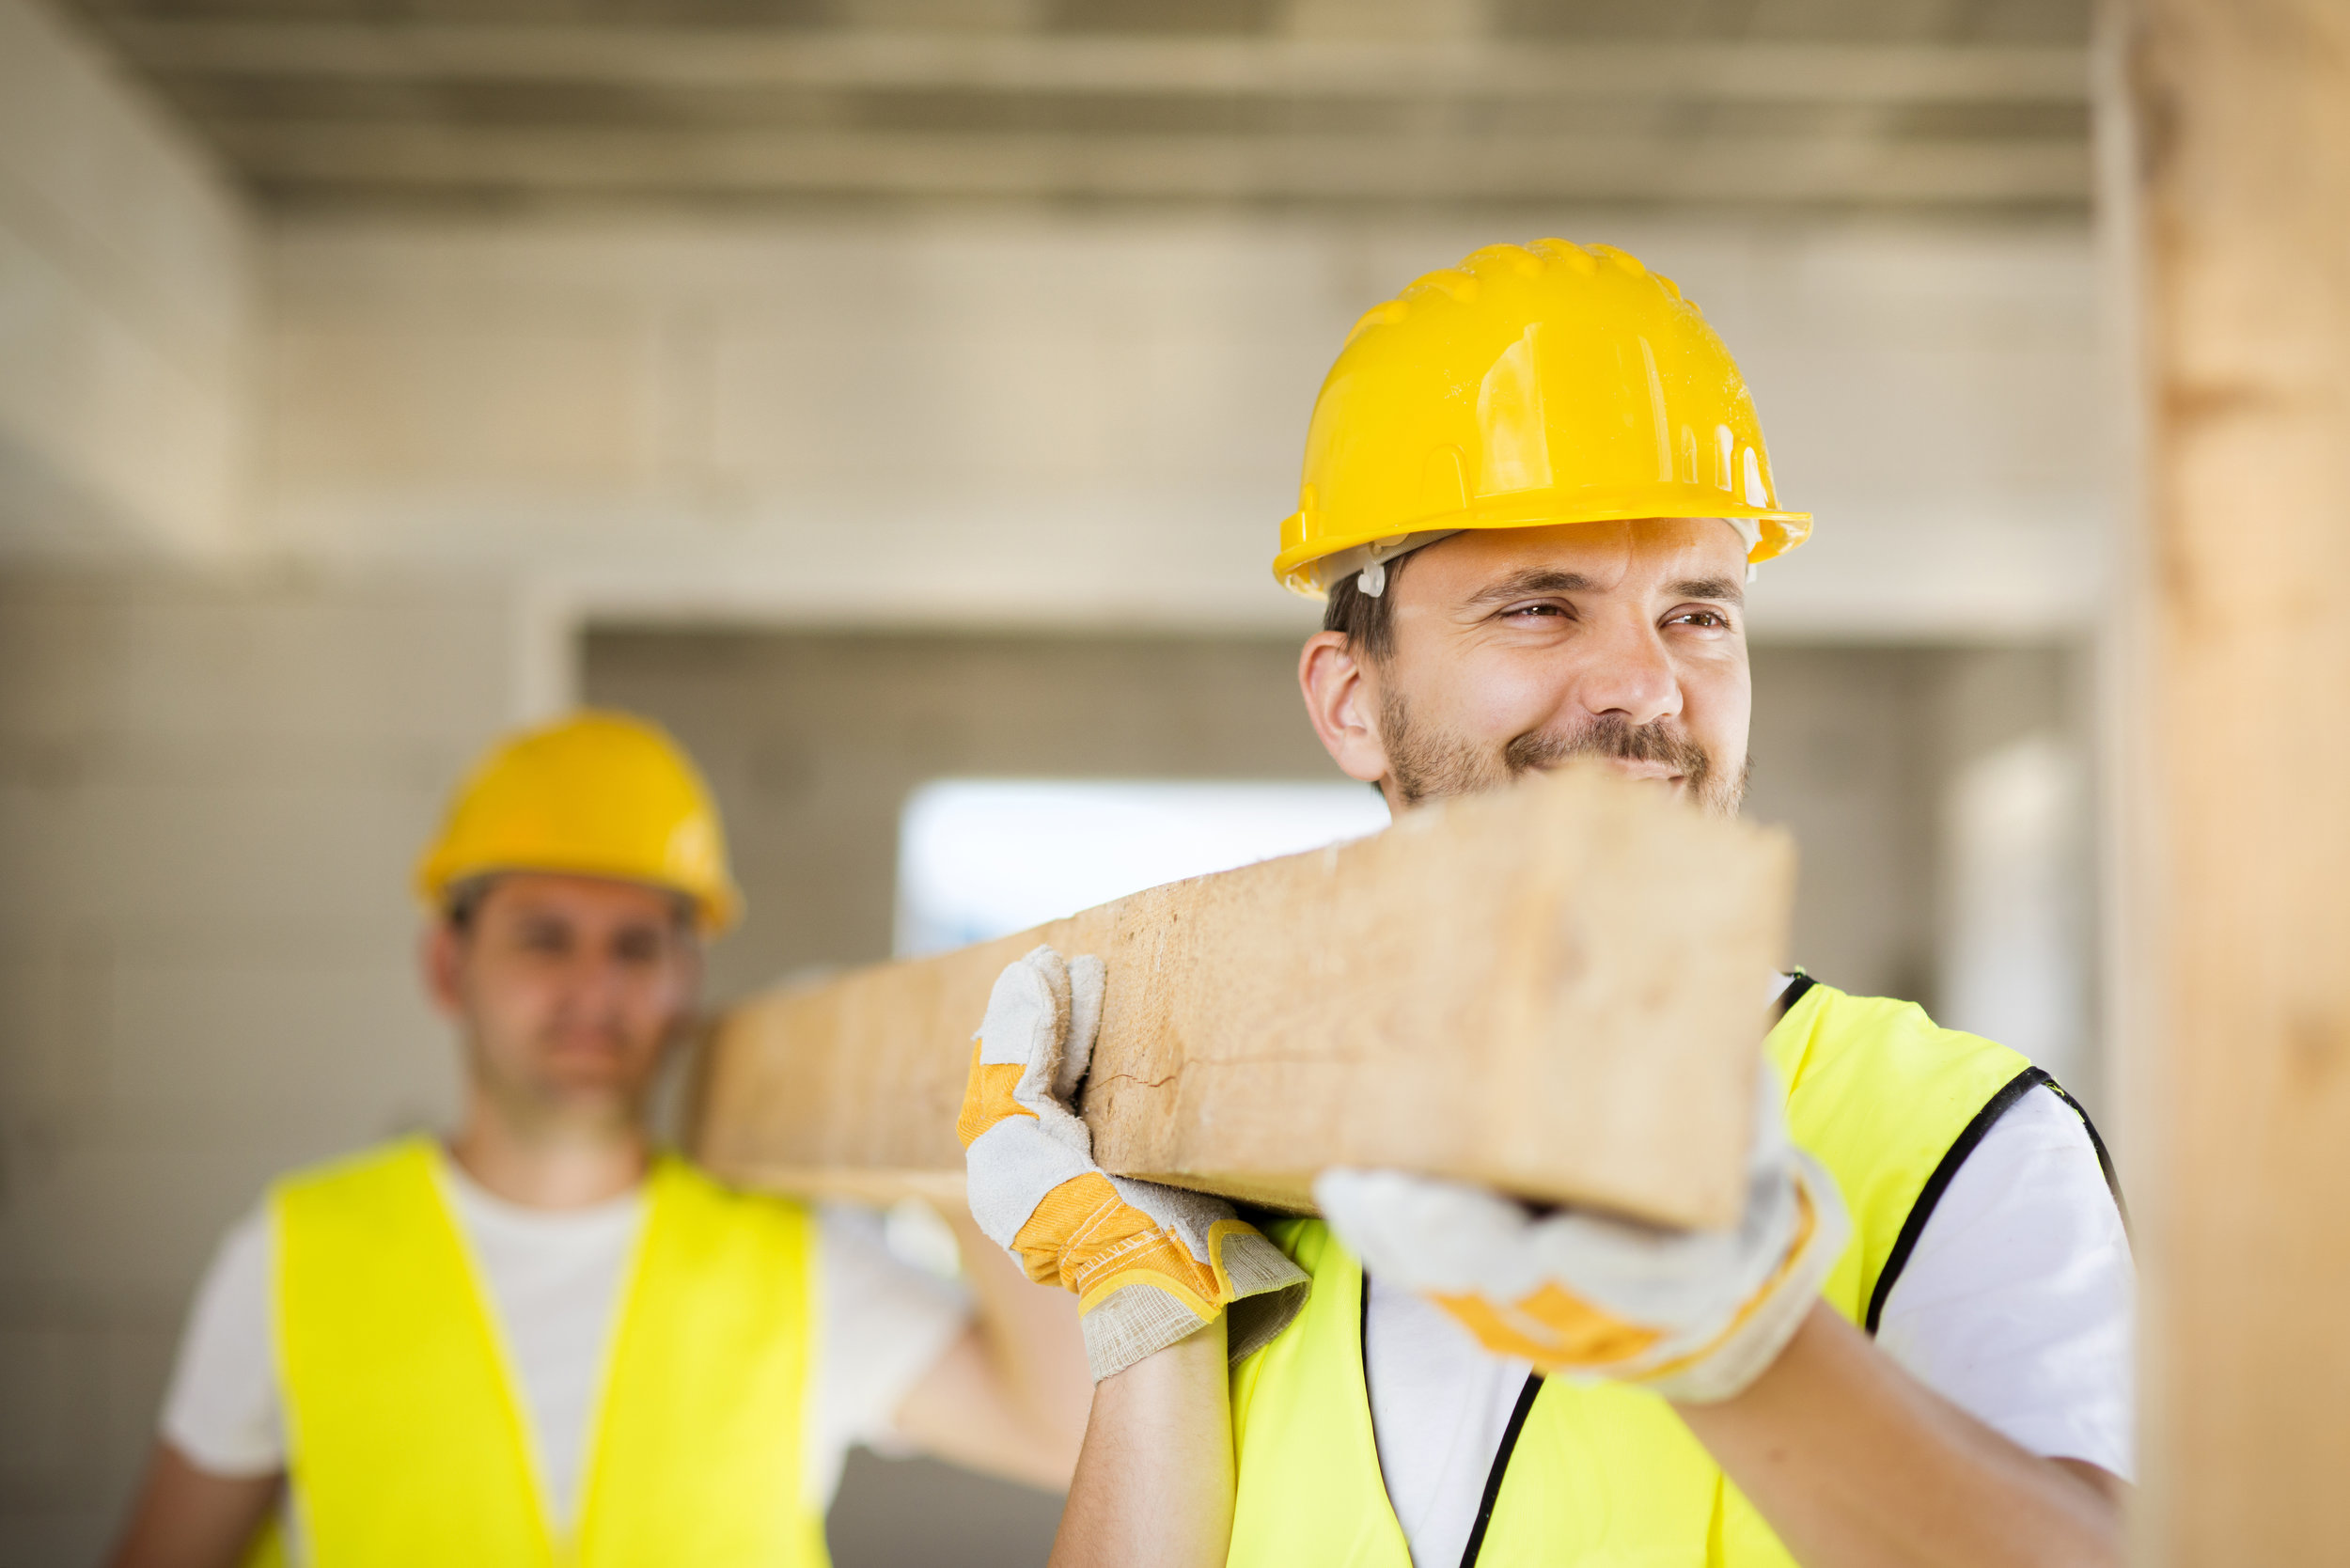 graphicstock-construction-workers-collaborating-on-new-house-building_BRXwSC9W-.jpg